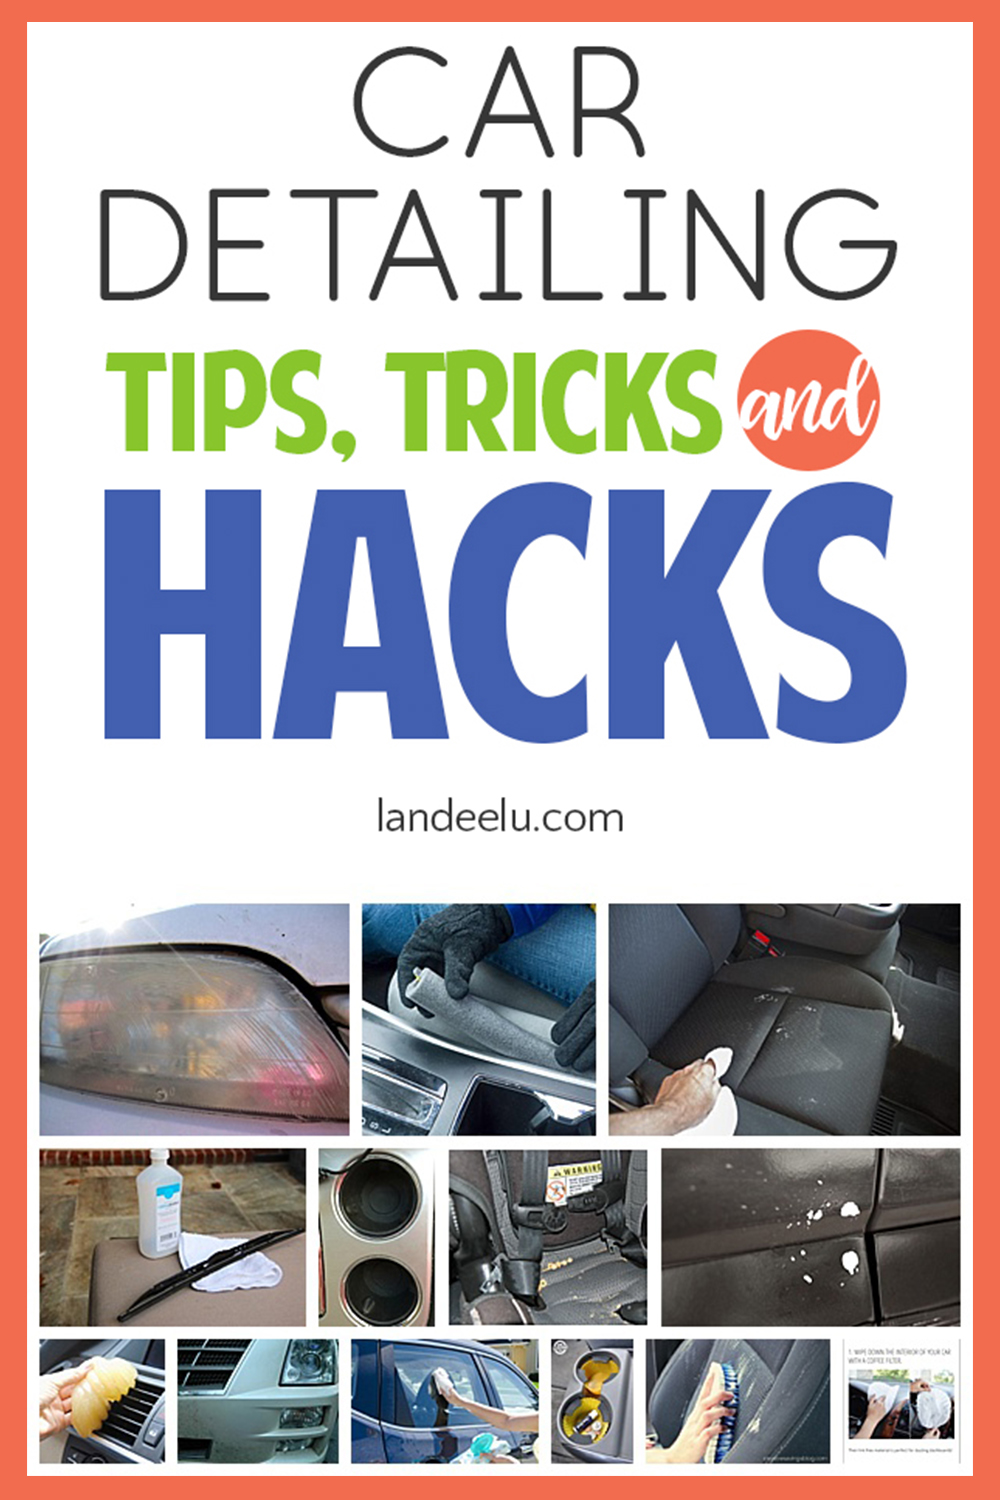 Love these awesome car detailing hacks, tips and tricks! A clean car is my love language! #cardetailing #cleaninghacks #cleaningtips #cleancar #cars